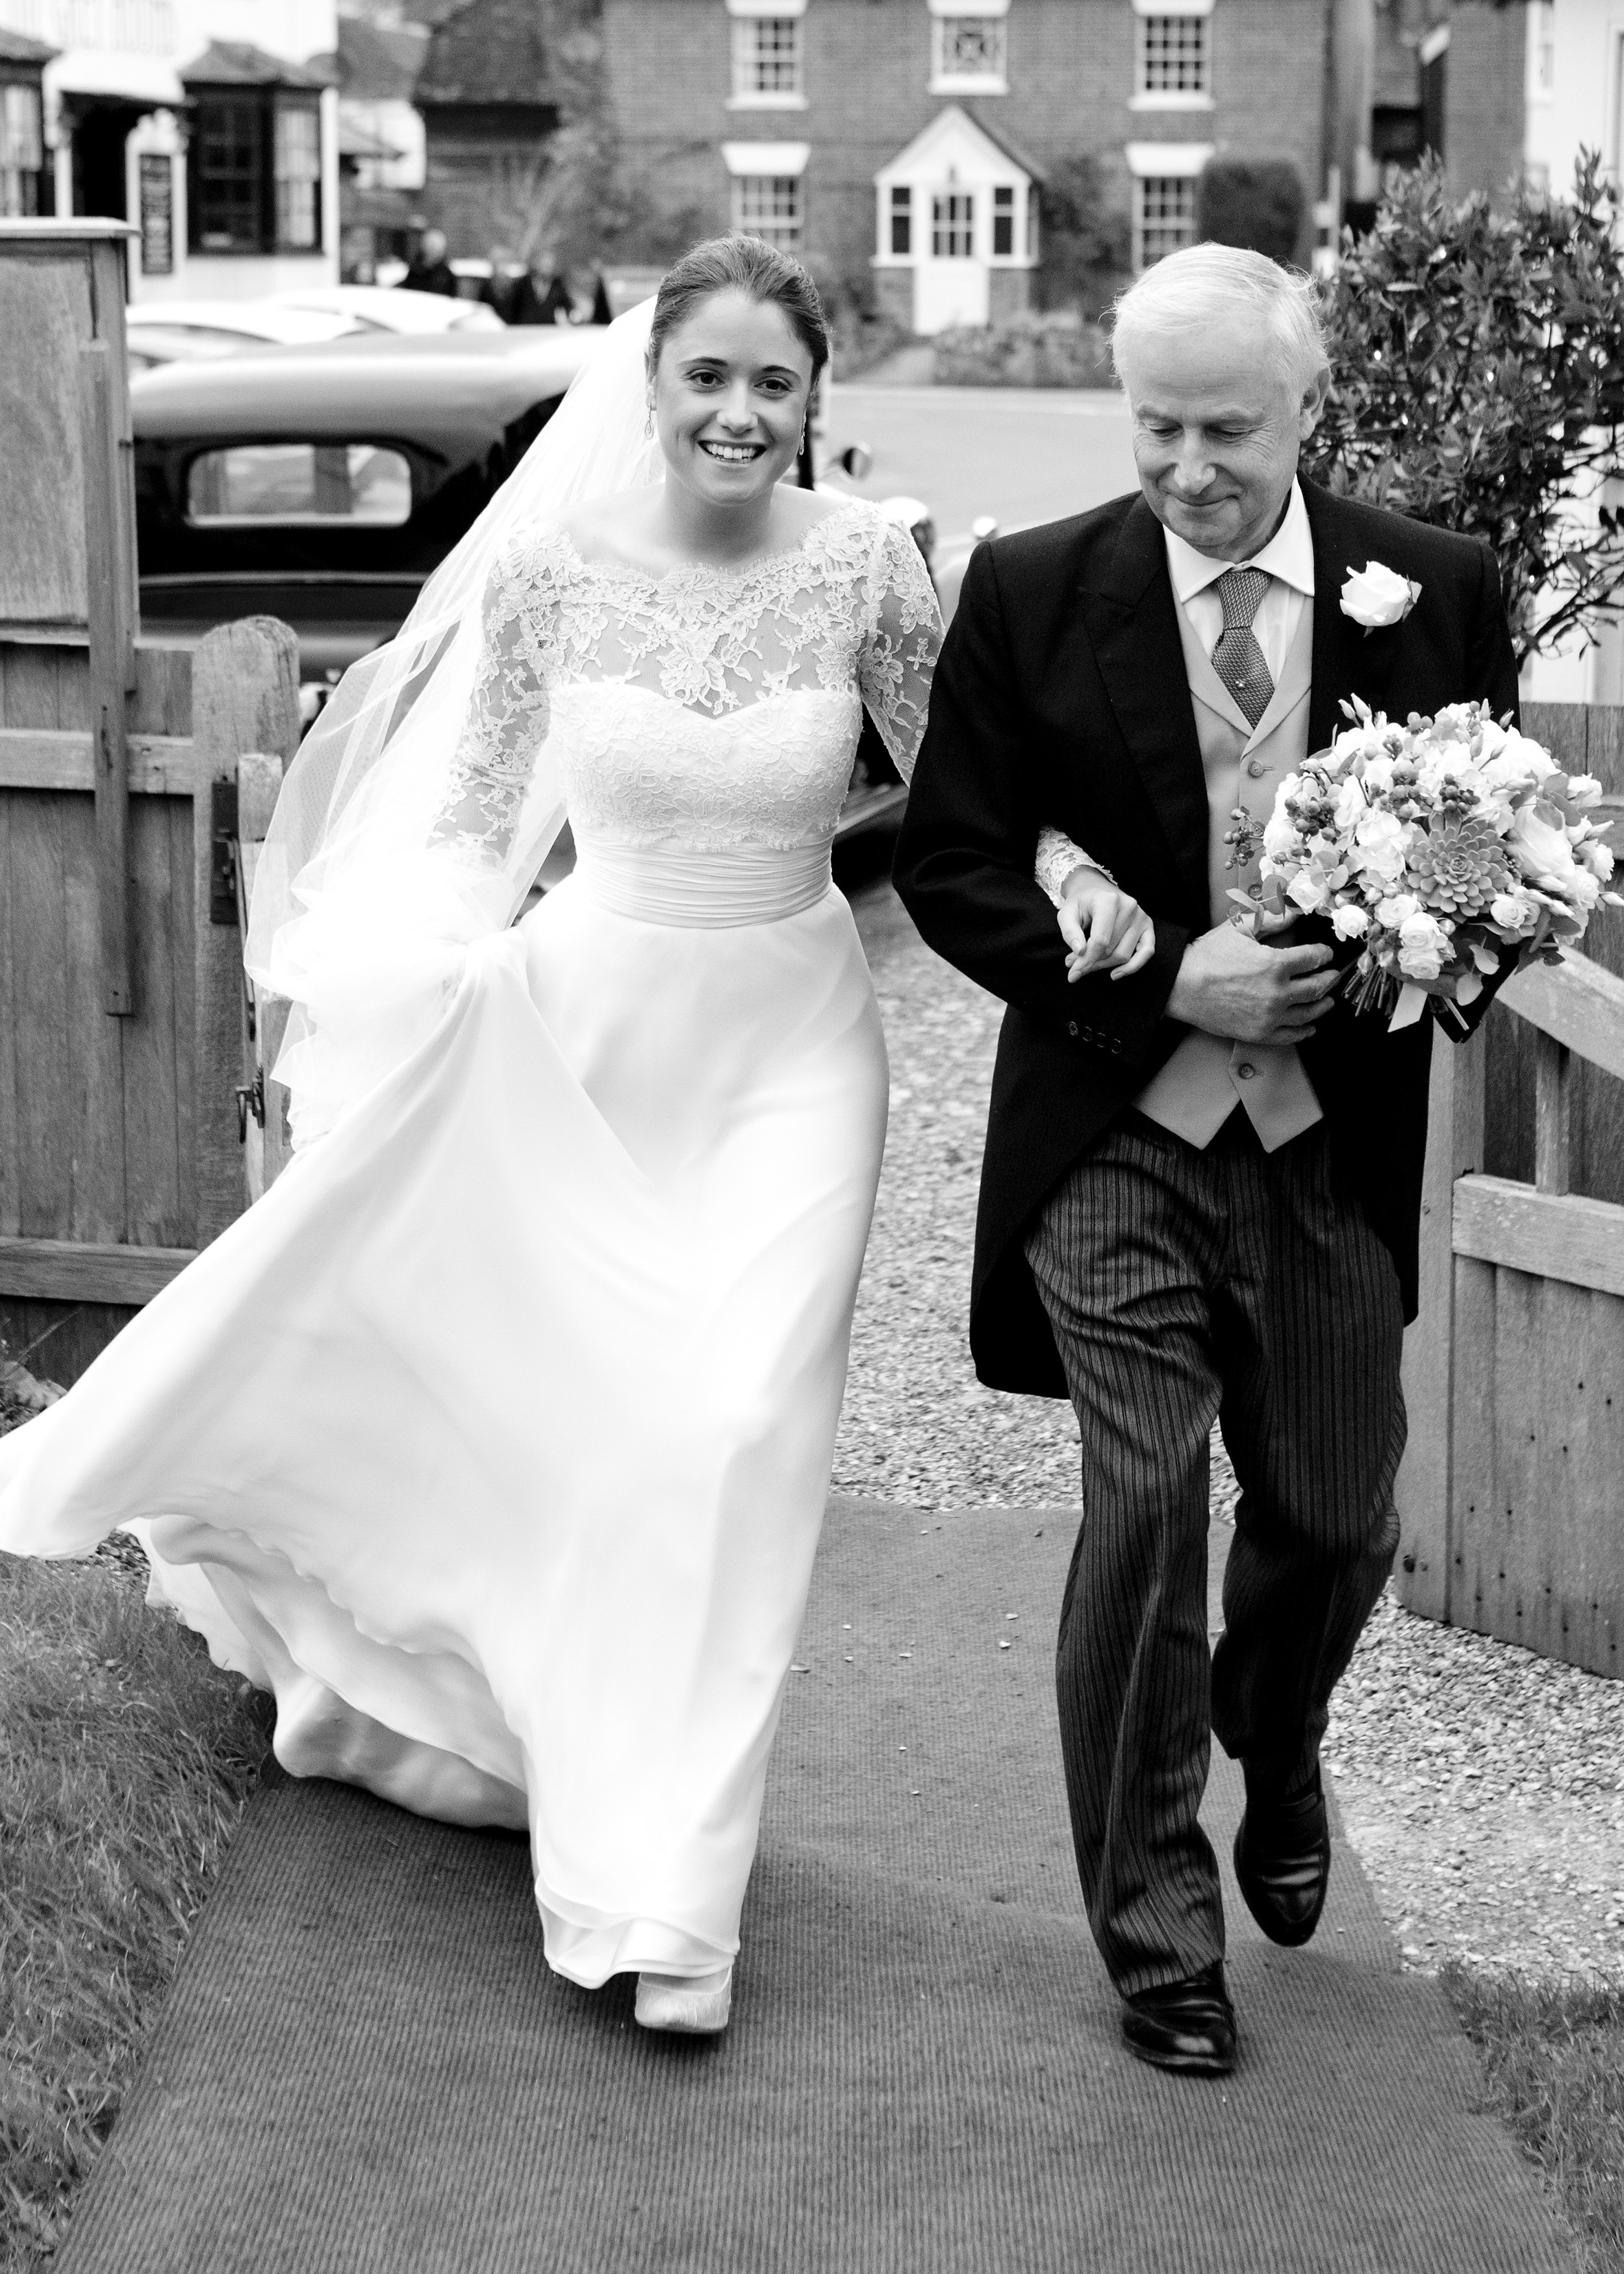 Issy & Ed's wedding, 5th December 2015, Houghton & Broughton, Hampshire